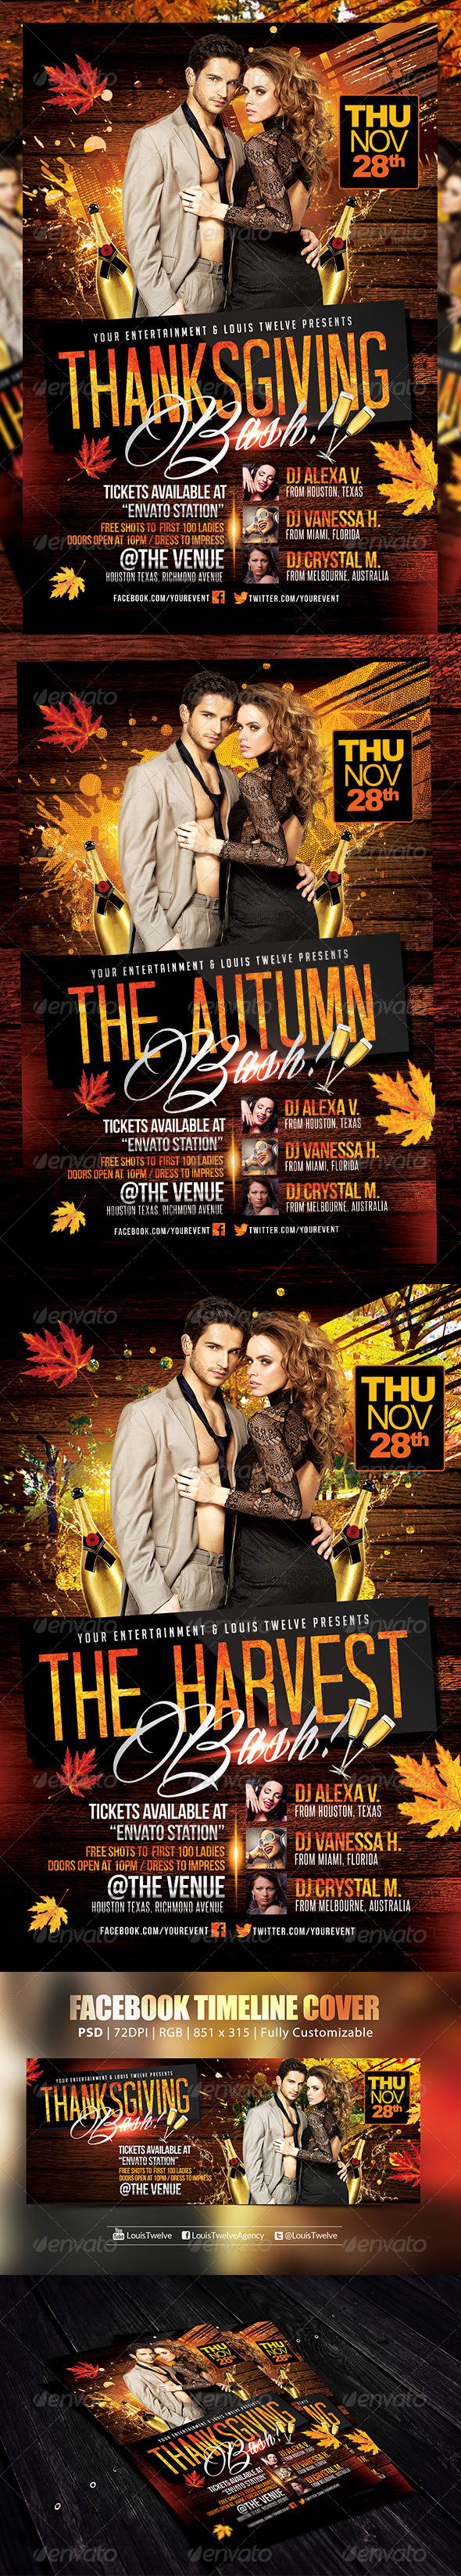 Thanksgiving or Autumn Bash | Flyer + FB Cover